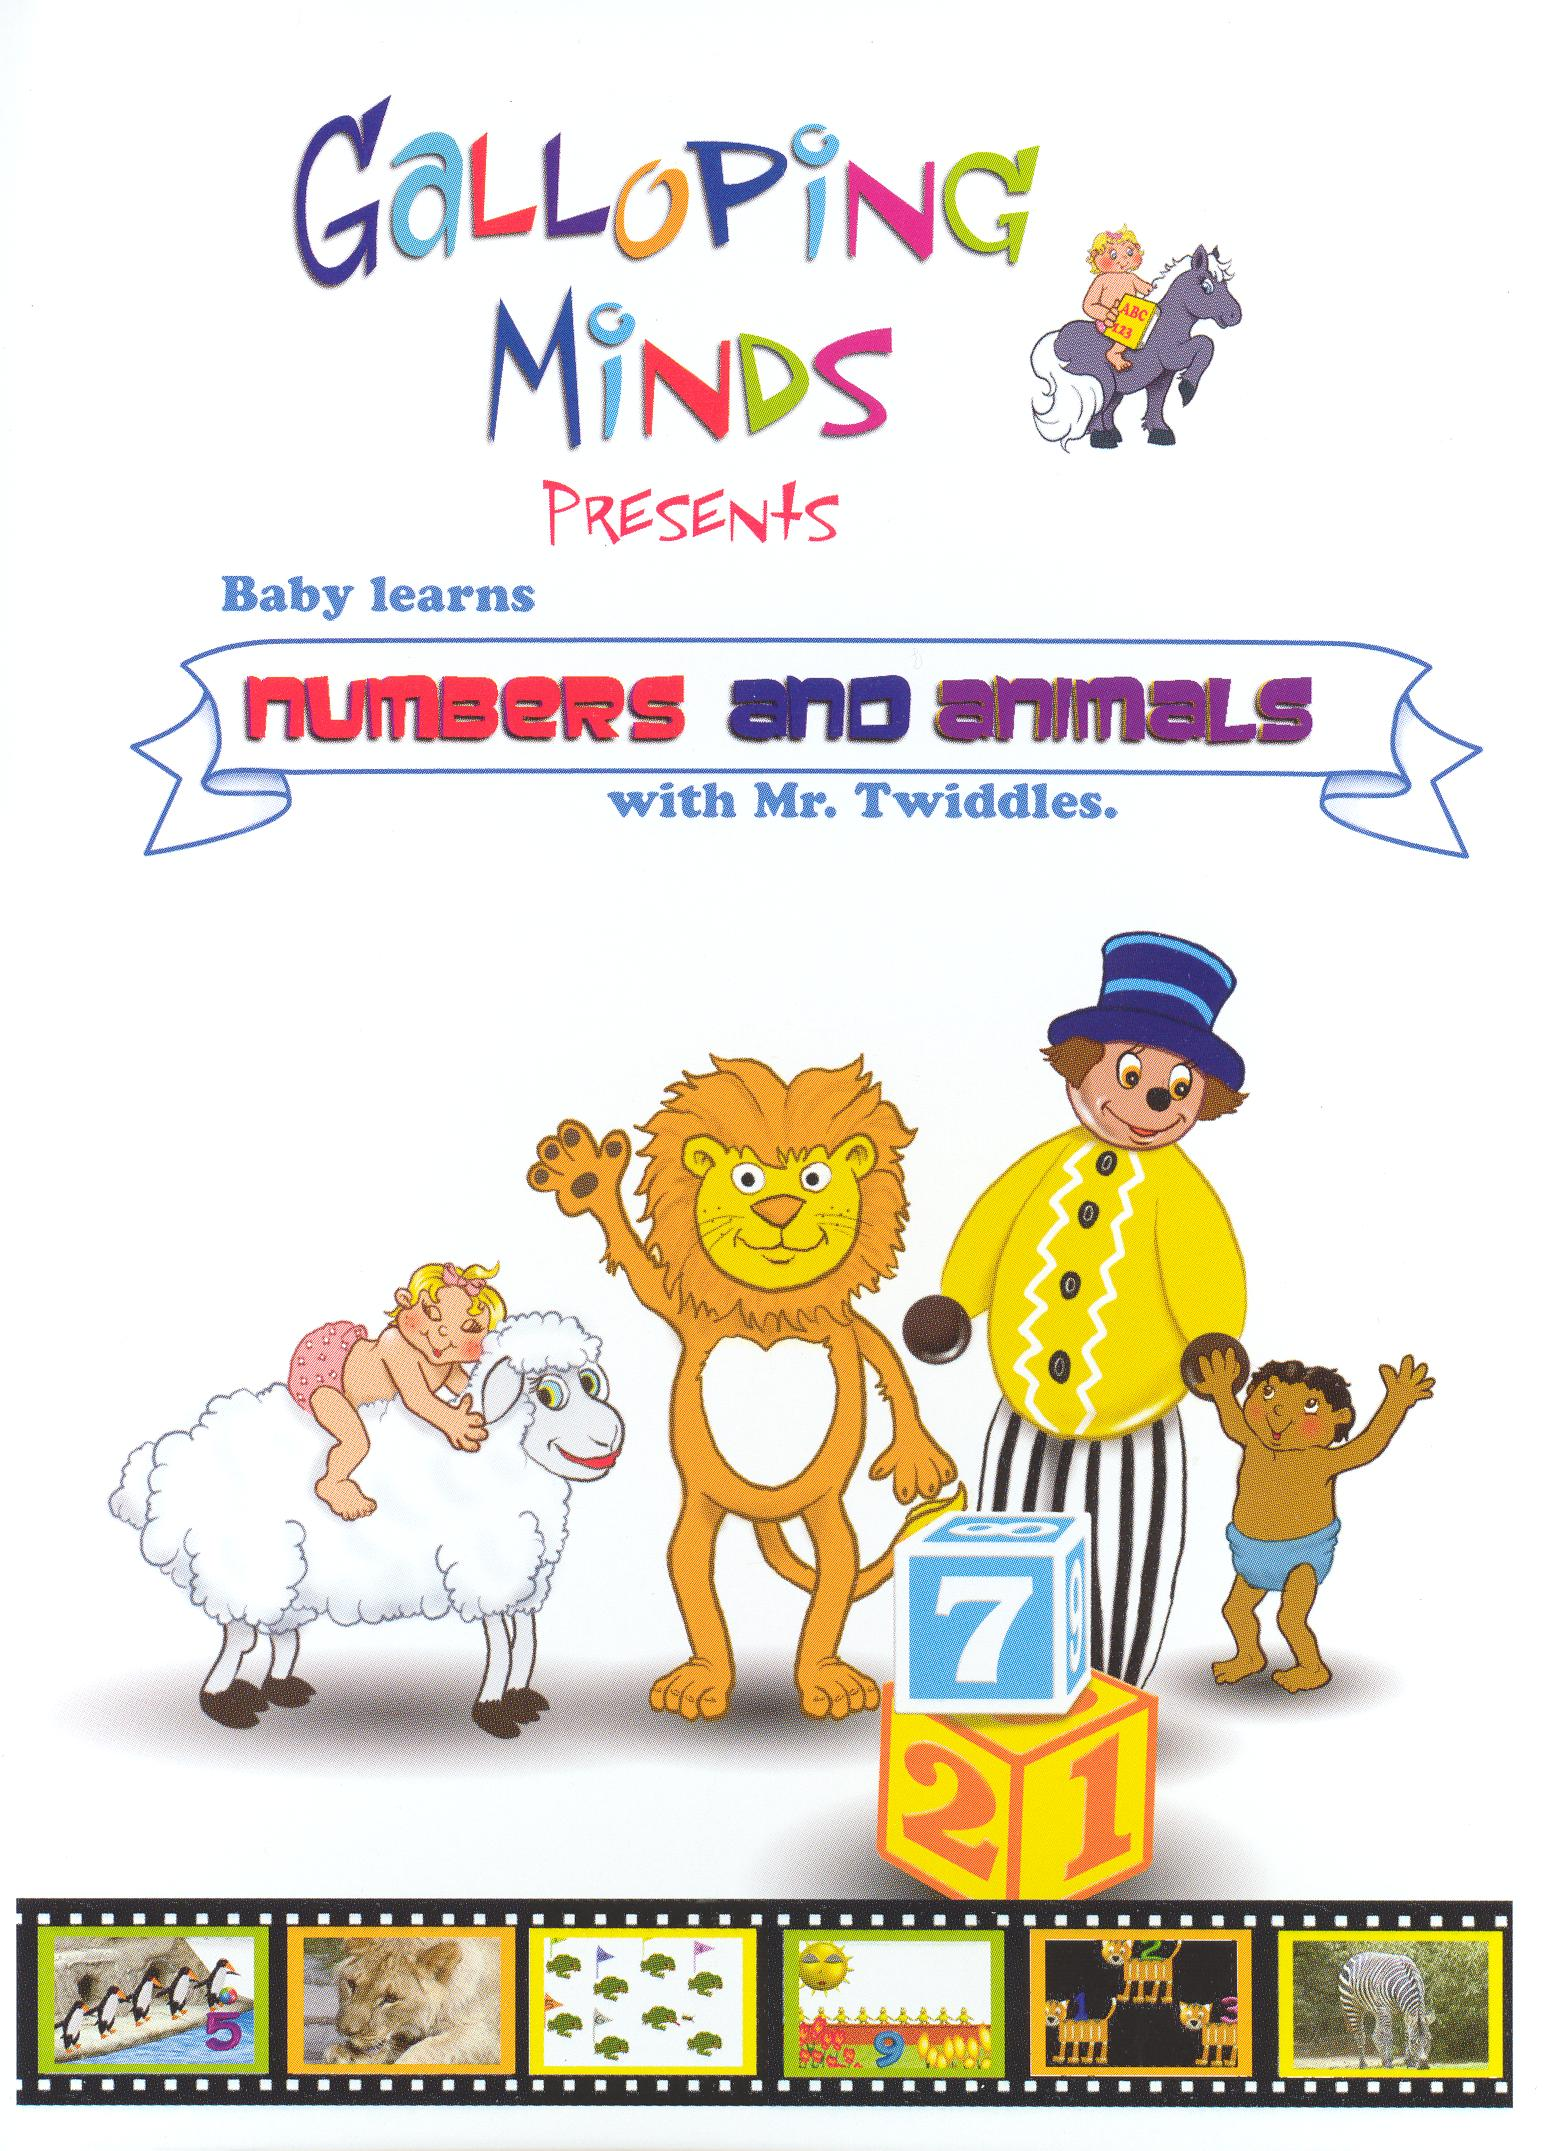 Galloping Minds: Numbers and Animals With Mr. Twid